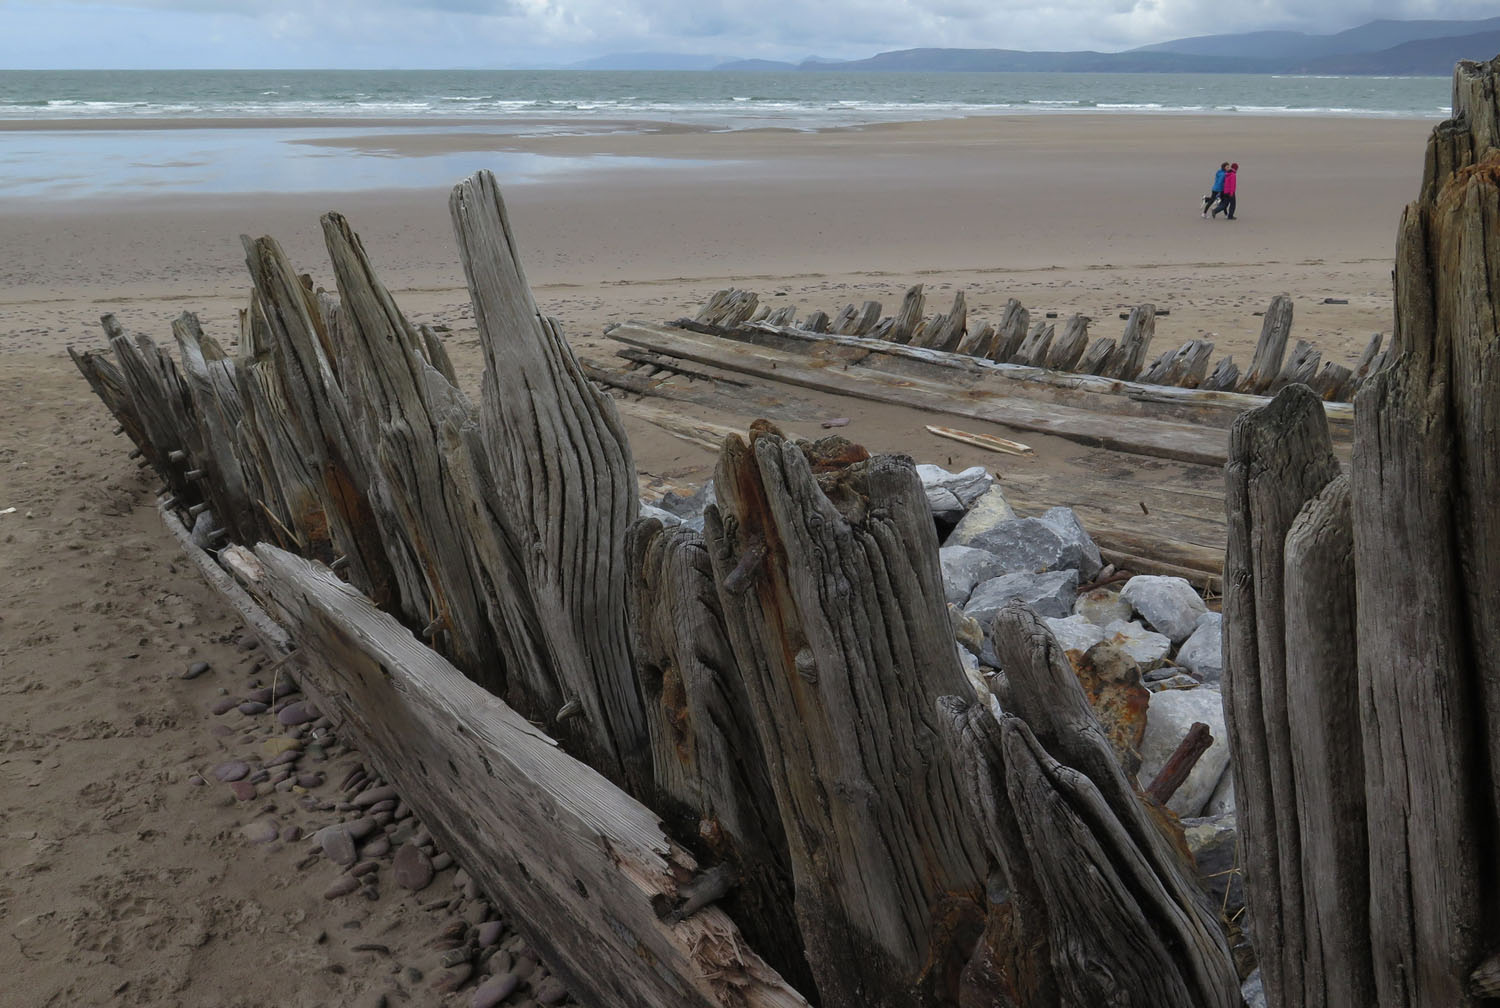 Ireland-Sights-And-Scenery-Rossbeigh-Strand-Shipwreck